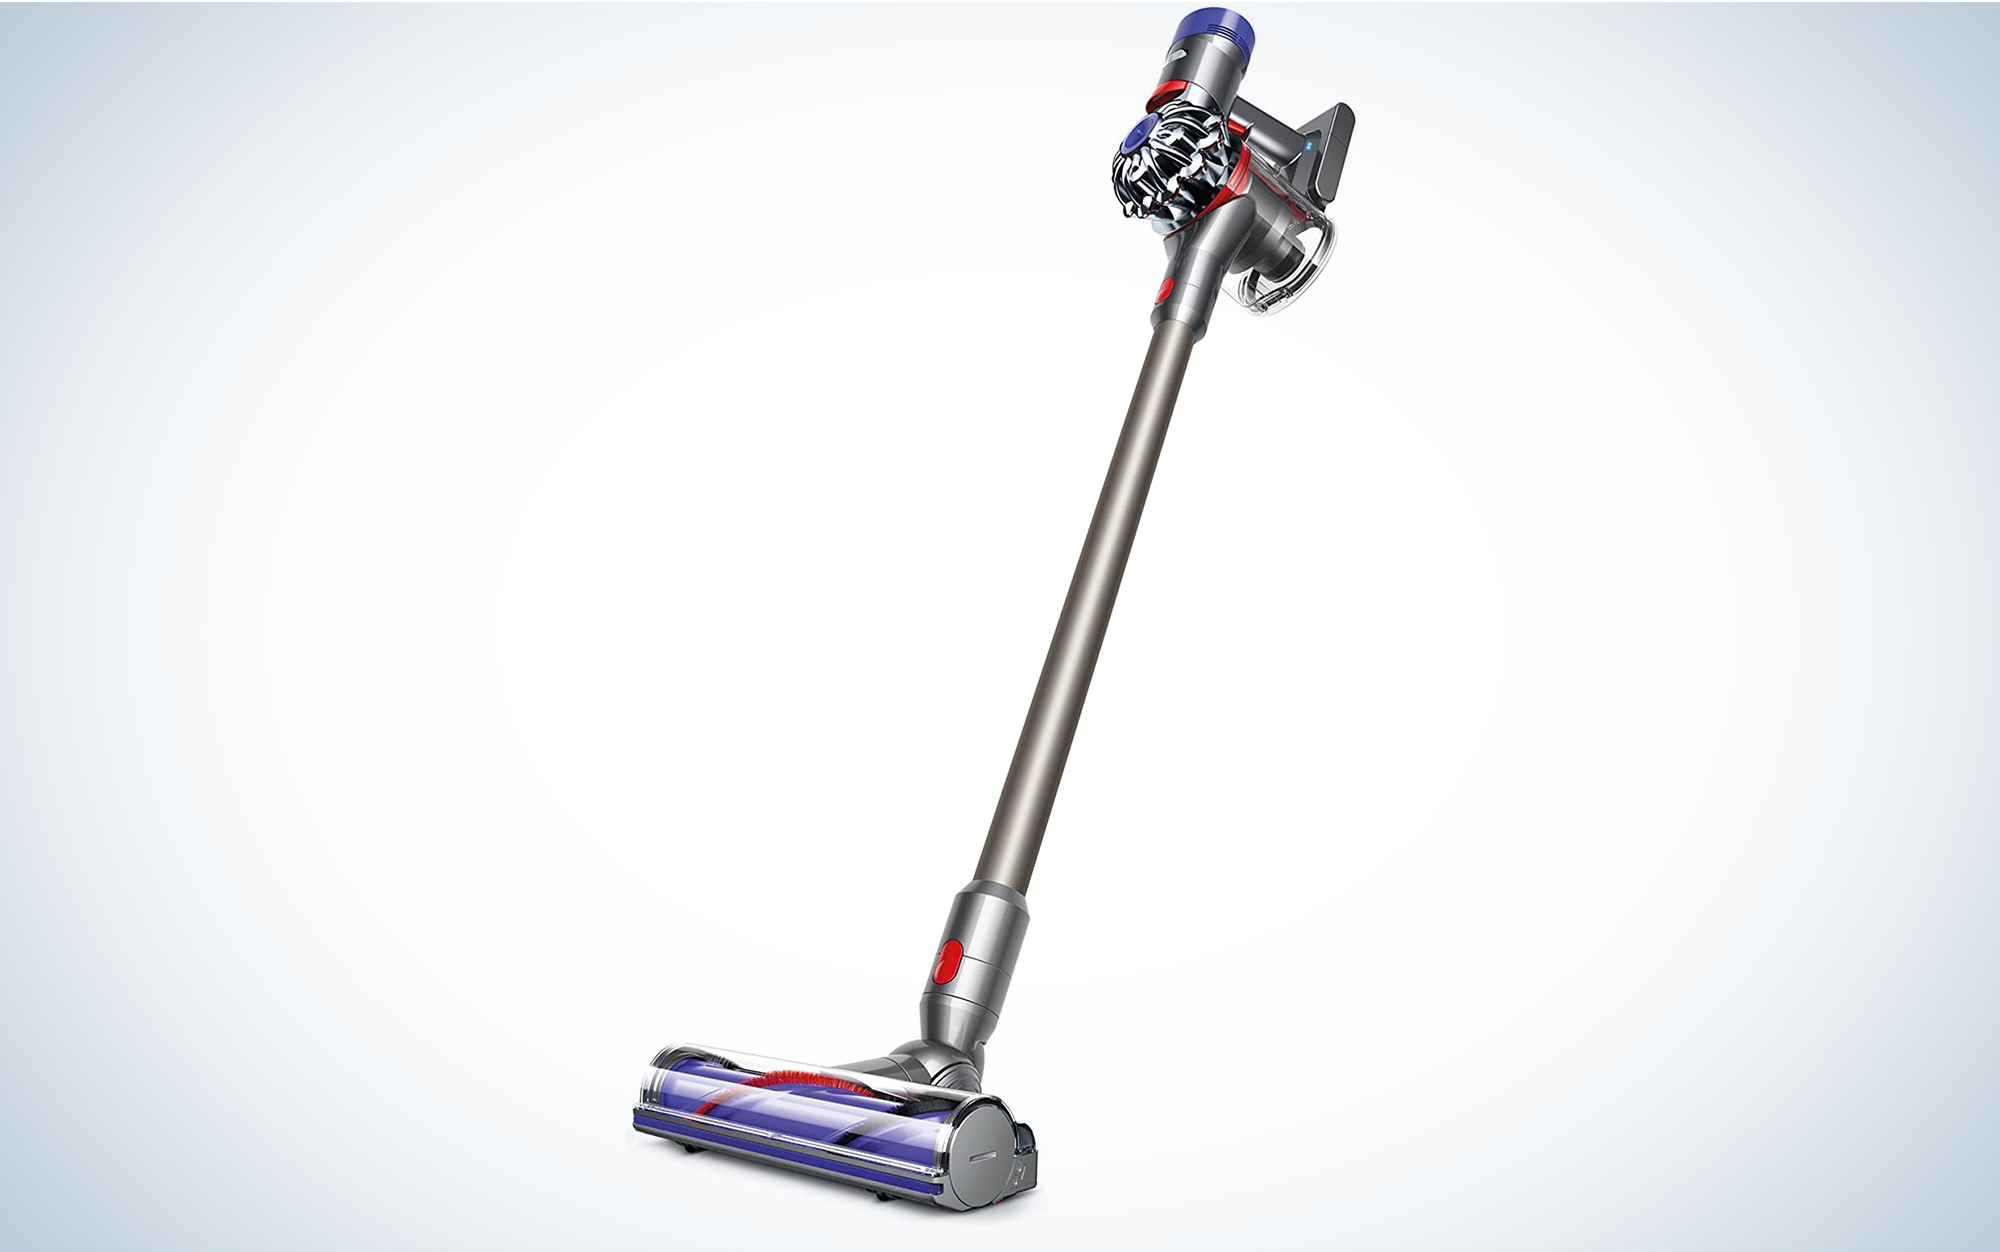 The Dyson V8 Animal vacuum cleaner